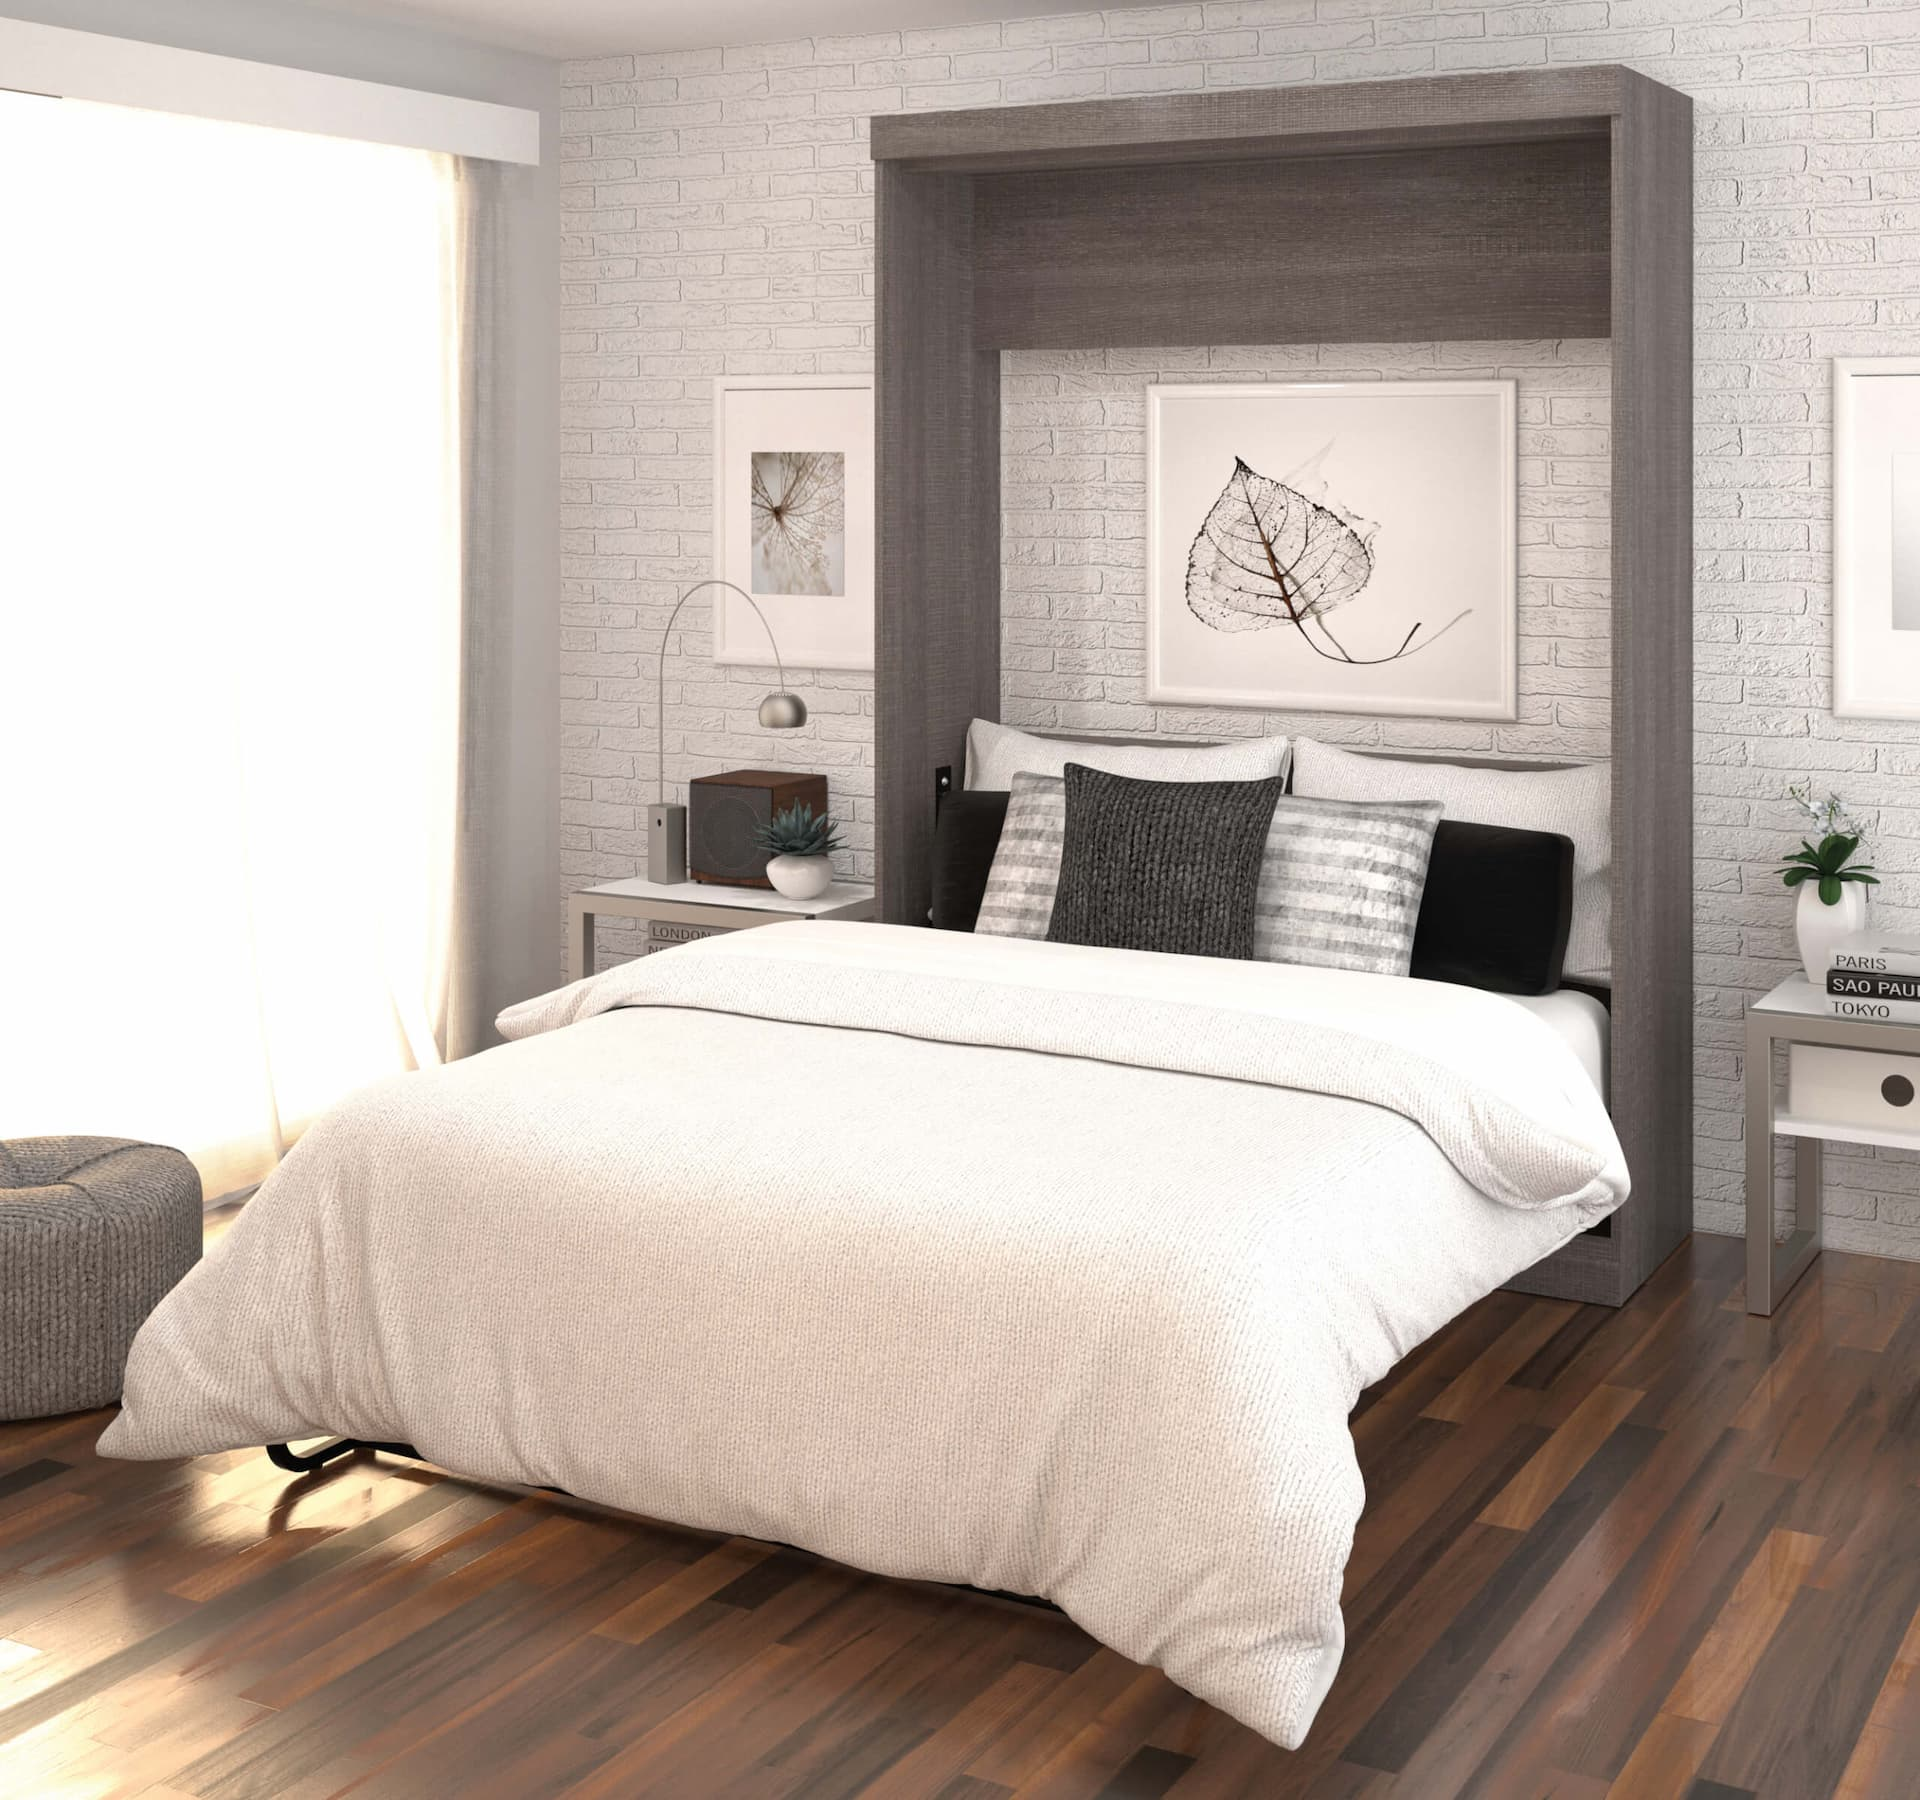 Guest bedroom with a practical Murphy bed